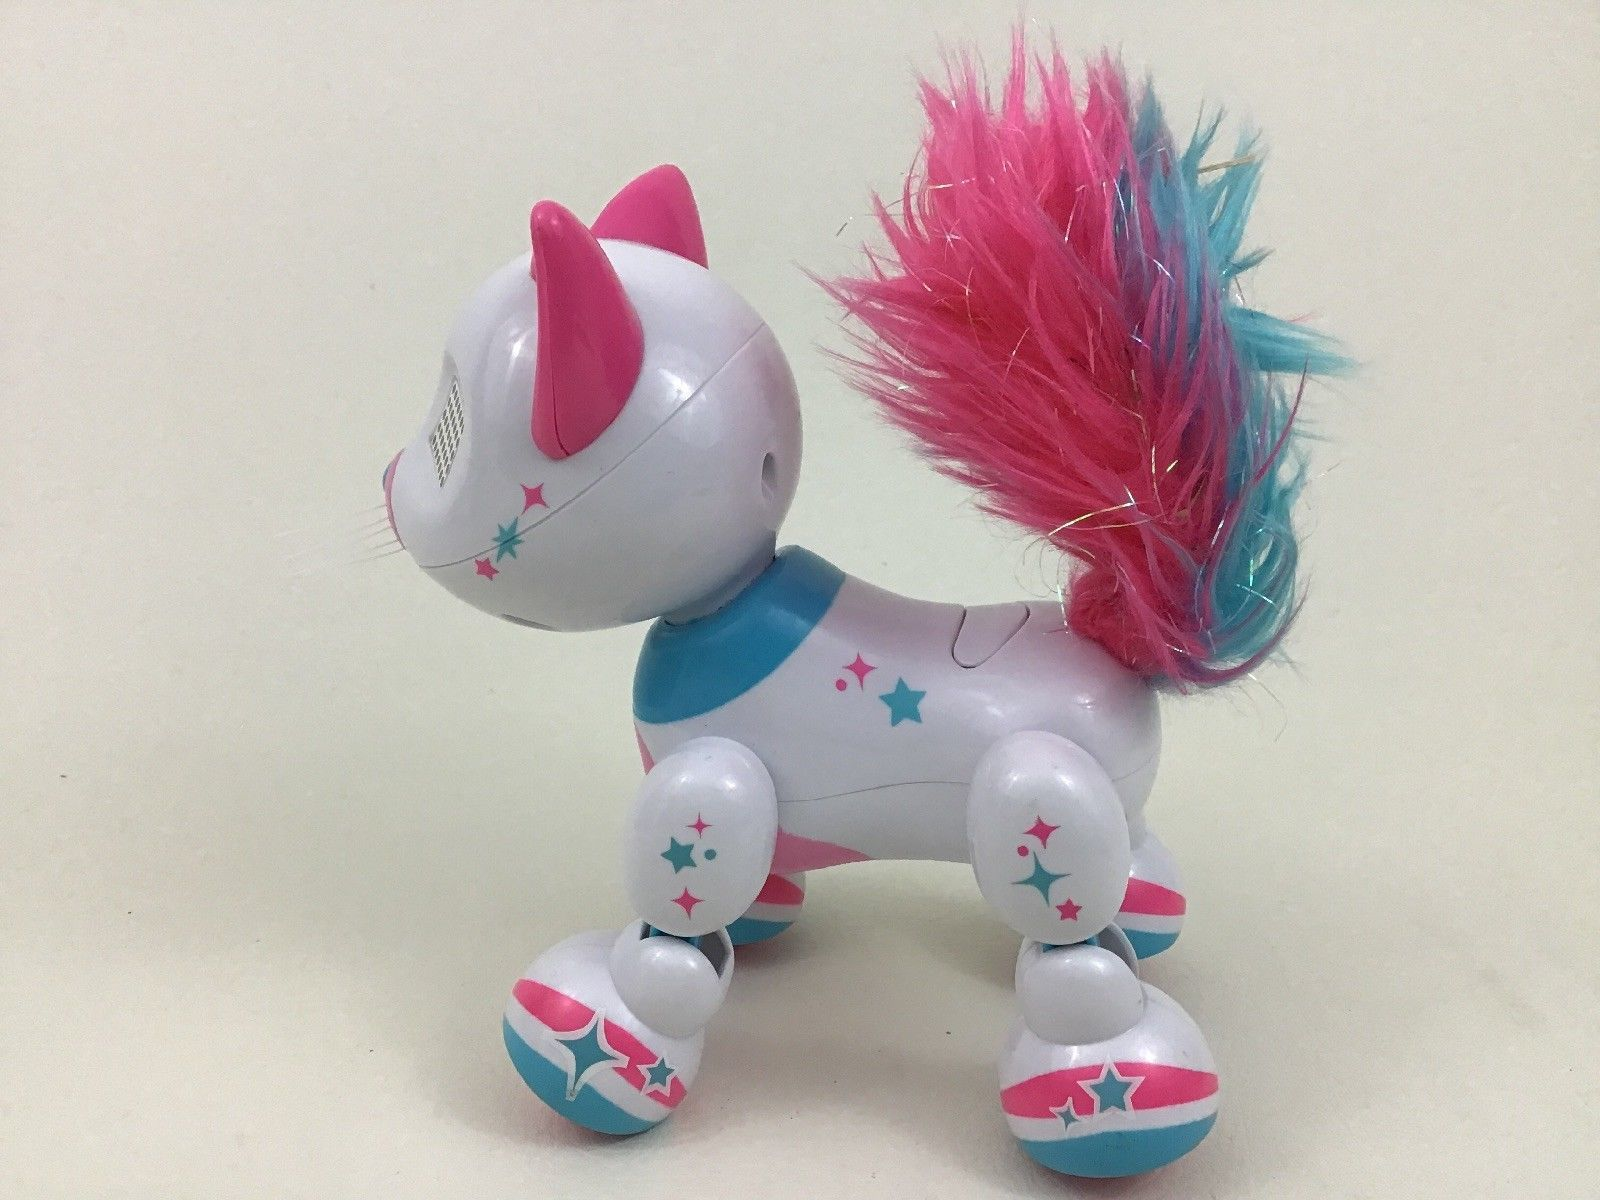 Fancy Zoomers Meowzies Cat White Robot Toy Girl's Spin Master 2016